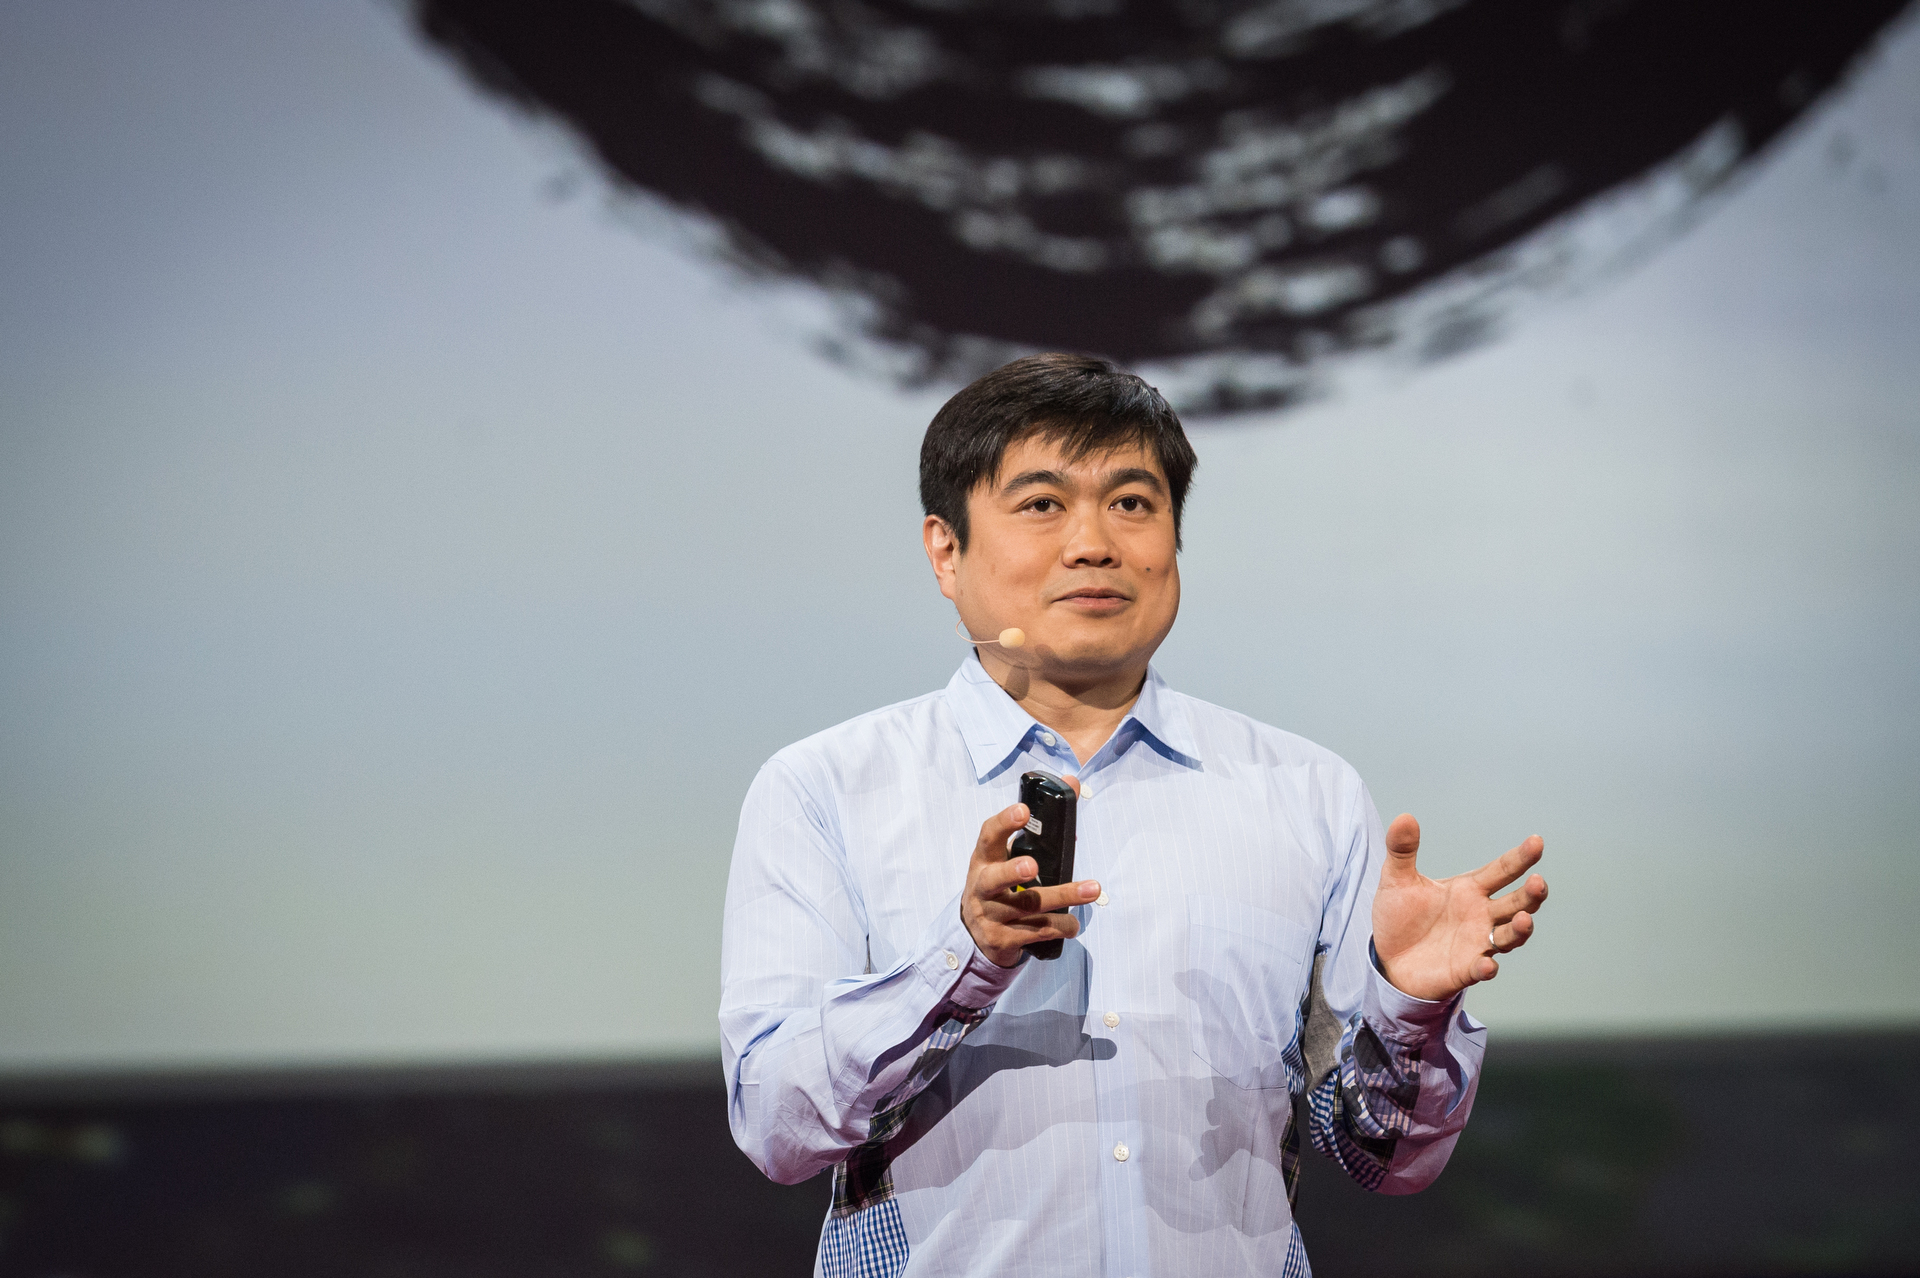 Joi Ito . Design. Joi is the director of the MIT Media Lab and pioneering the exploration of indigenous culture toward the design of future society resilience.